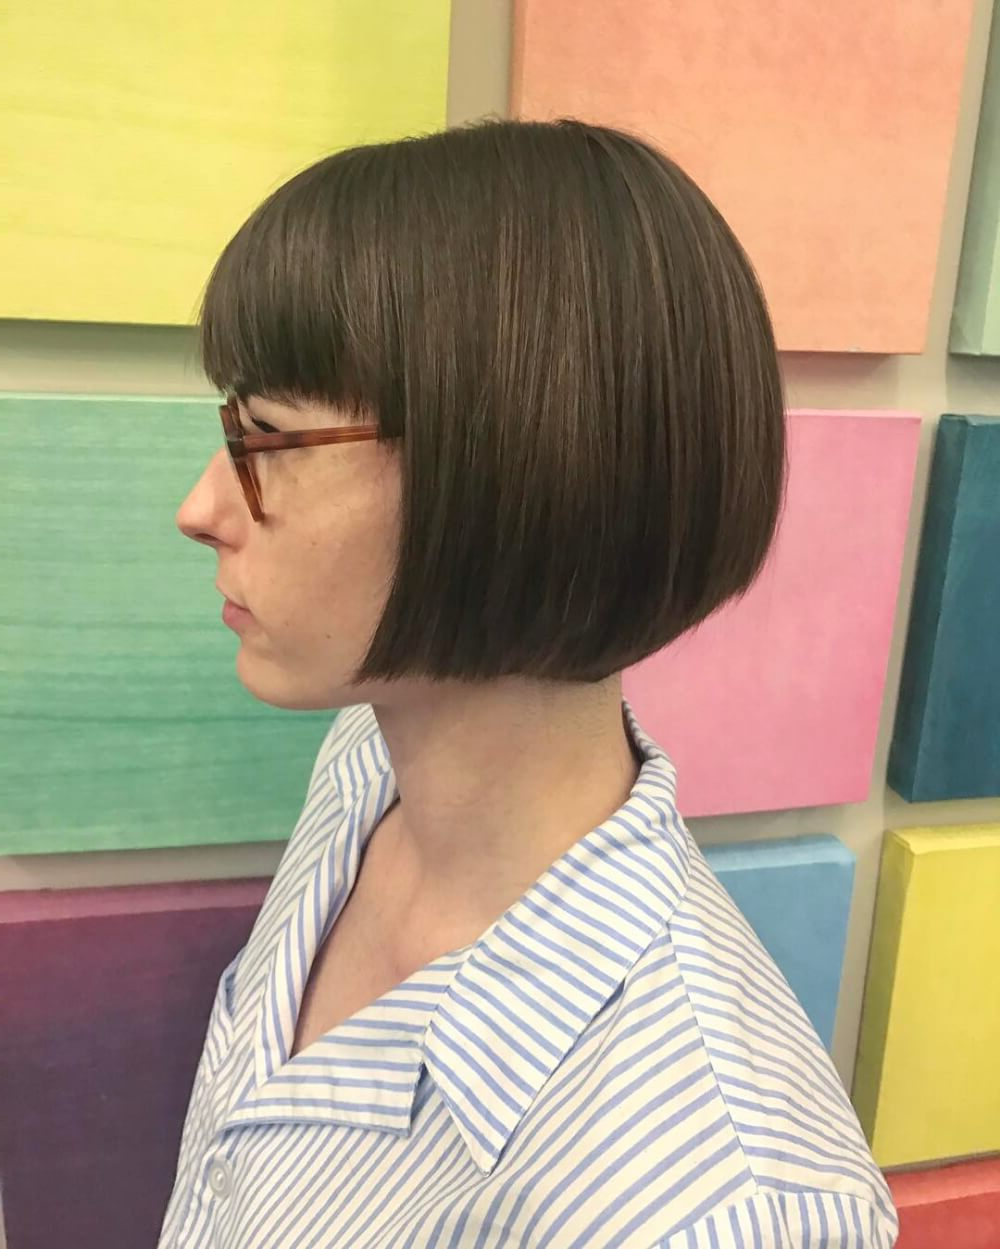 49 Chic Short Bob Hairstyles & Haircuts For Women In 2018 Regarding Short Straight Bob Hairstyles (View 10 of 20)